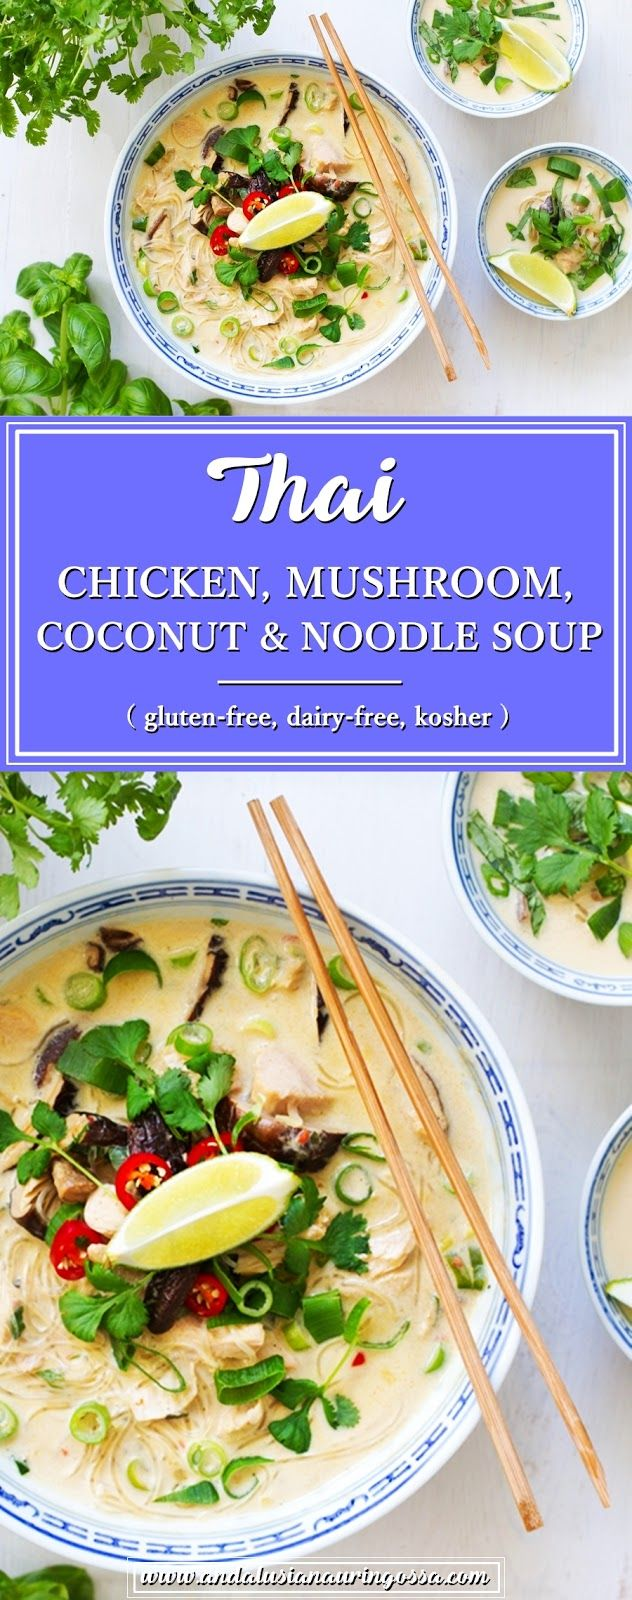 Some of my secrets to weeknight dinners are noodles and rotisserie chicken. Together they make this quick, easy and delicious Thai chicken, mushroom, coconut and noodle soup.   * * *   gluten-free kosher recipe food blog food photography